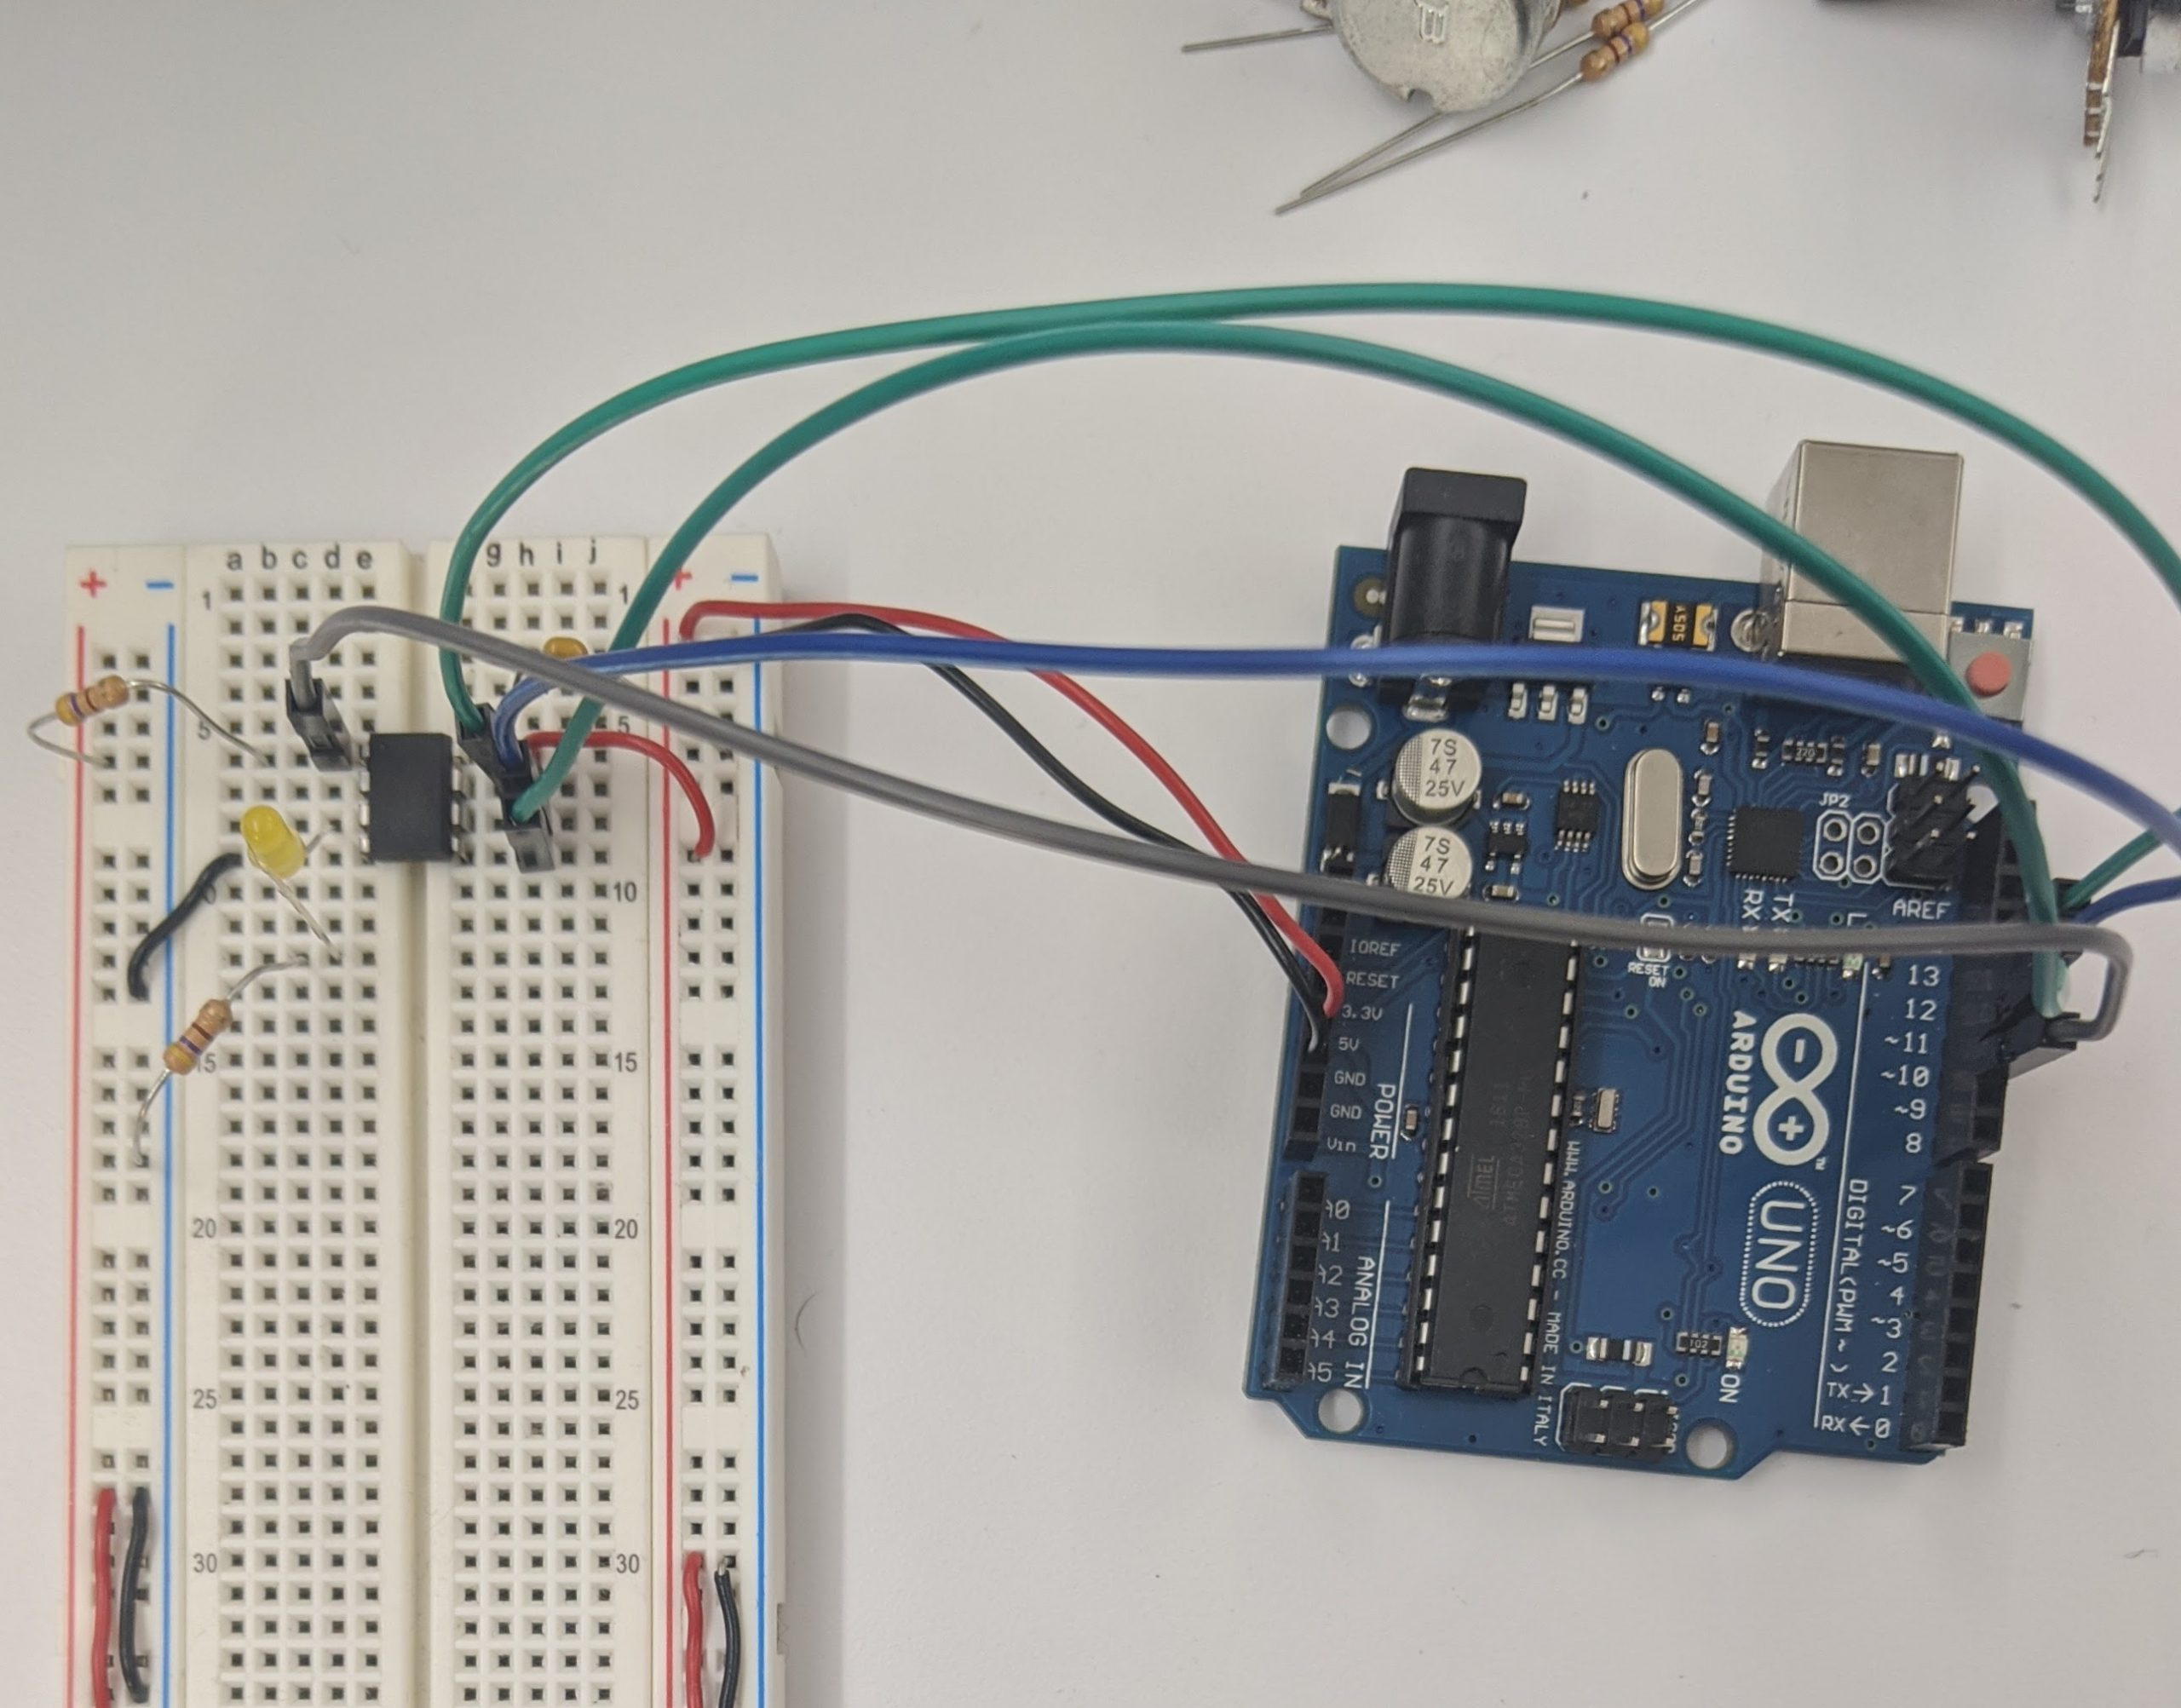 Setup: Arduino UNO connected to ATtiny.